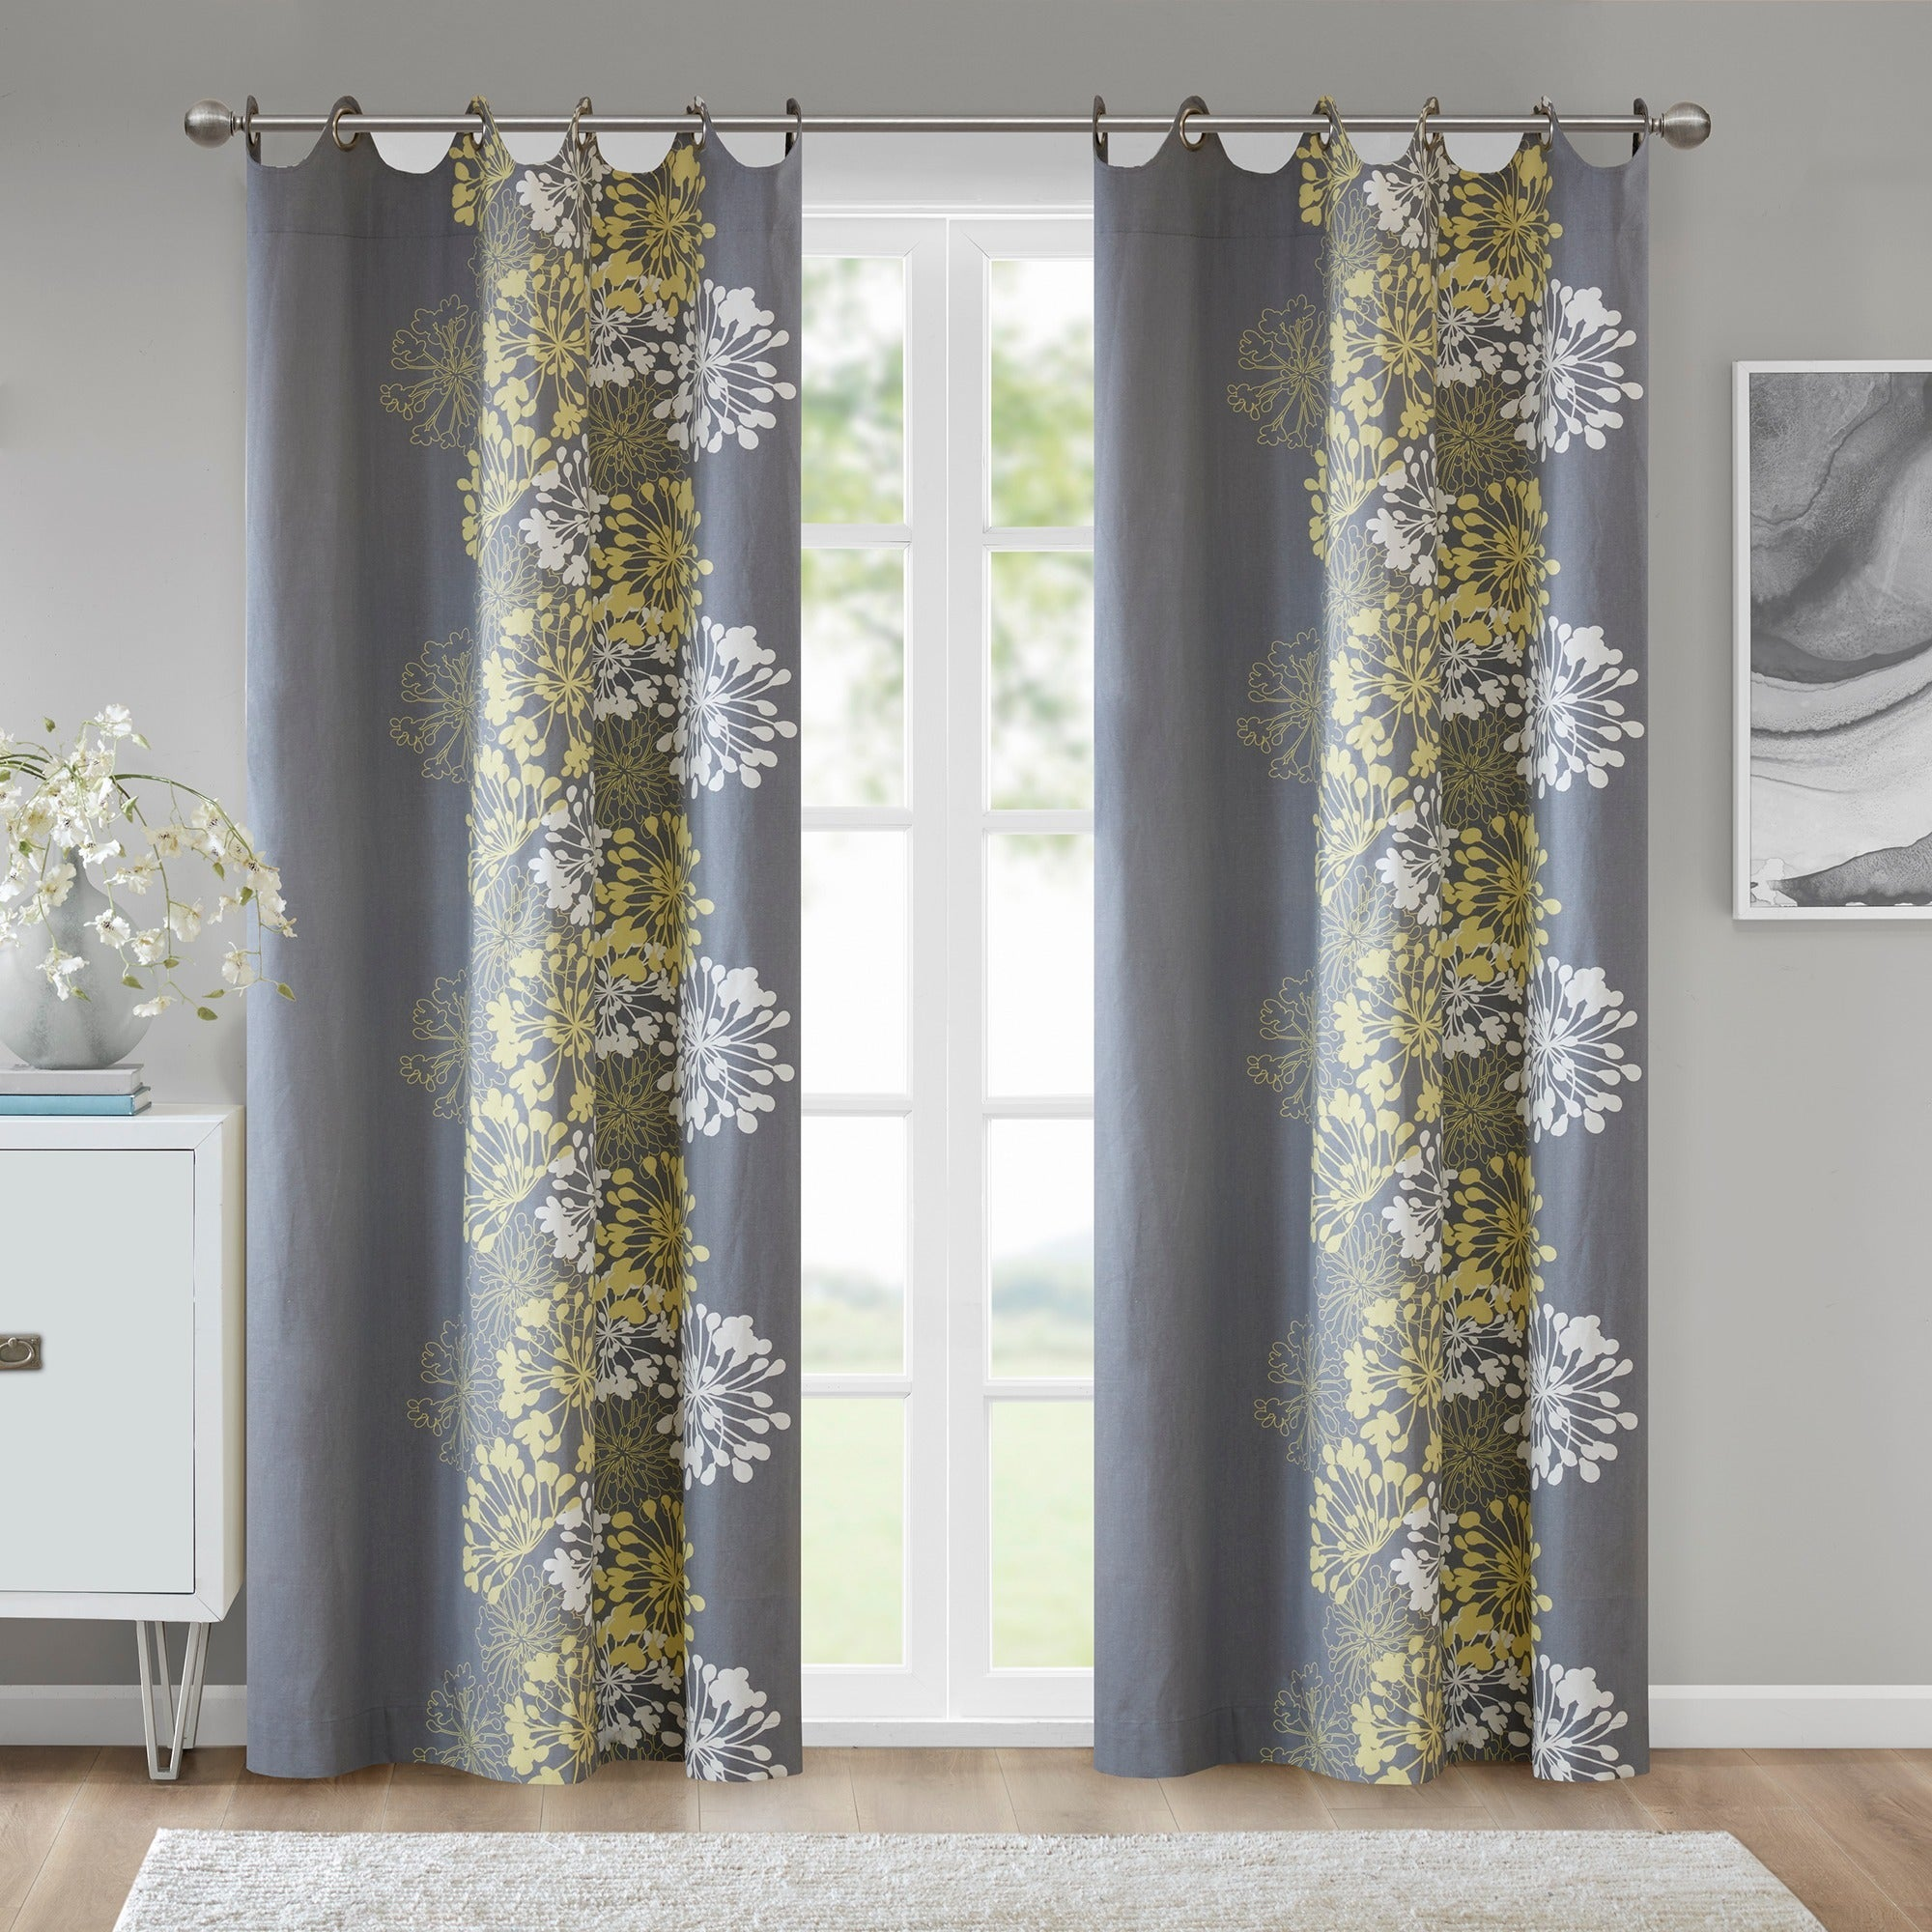 mud header embroidery drapes on curtains curtain arashi panel ombre large drop my overstock cloth take dyed white